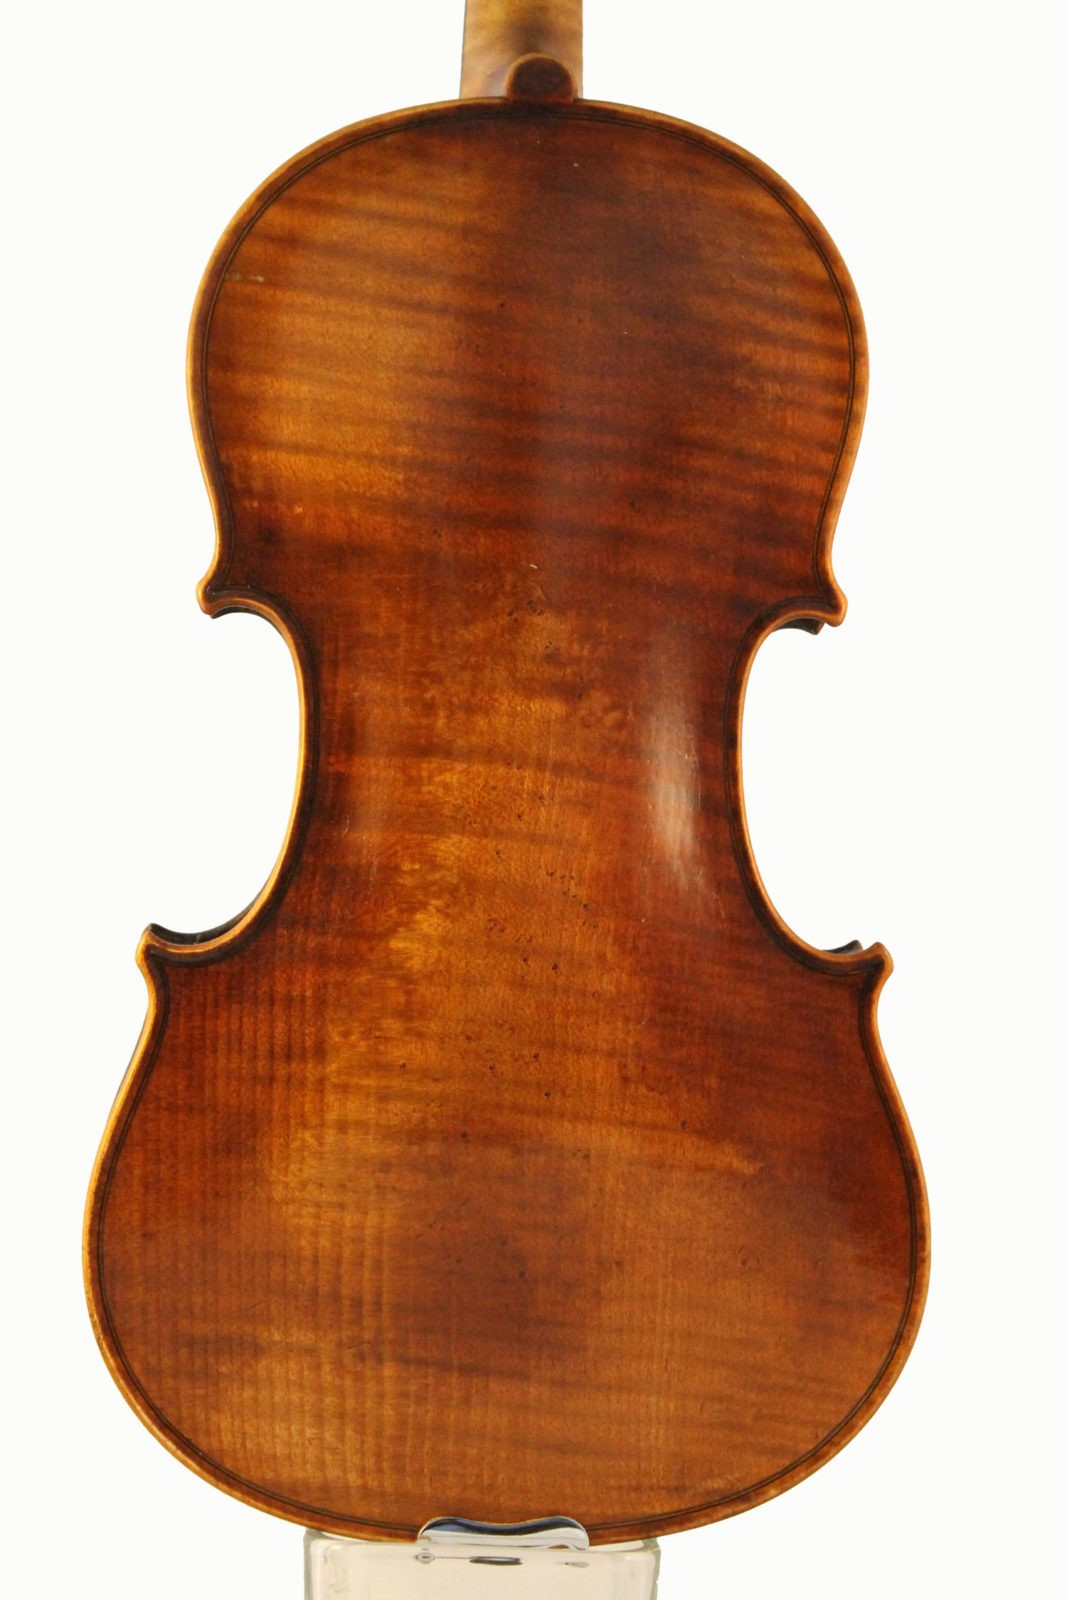 Roth Lederer violin back